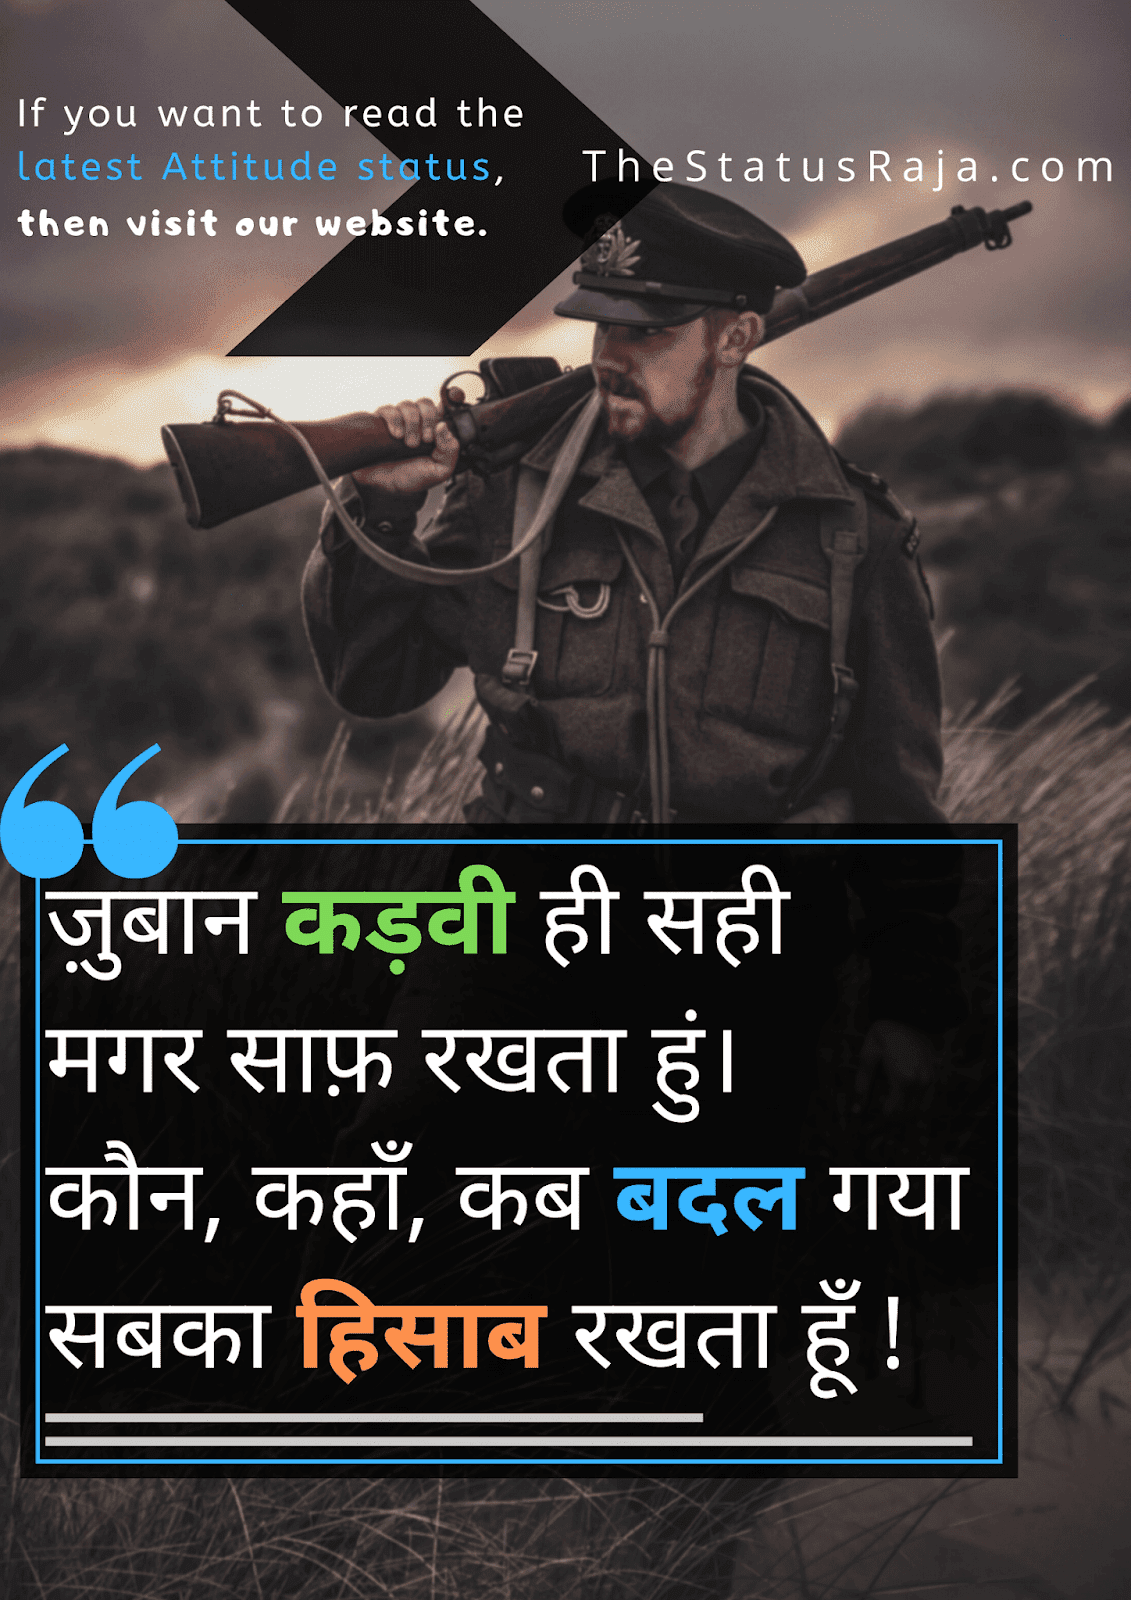 Latest Attitude Status in Hindi with images | For WhatsApp & Fb